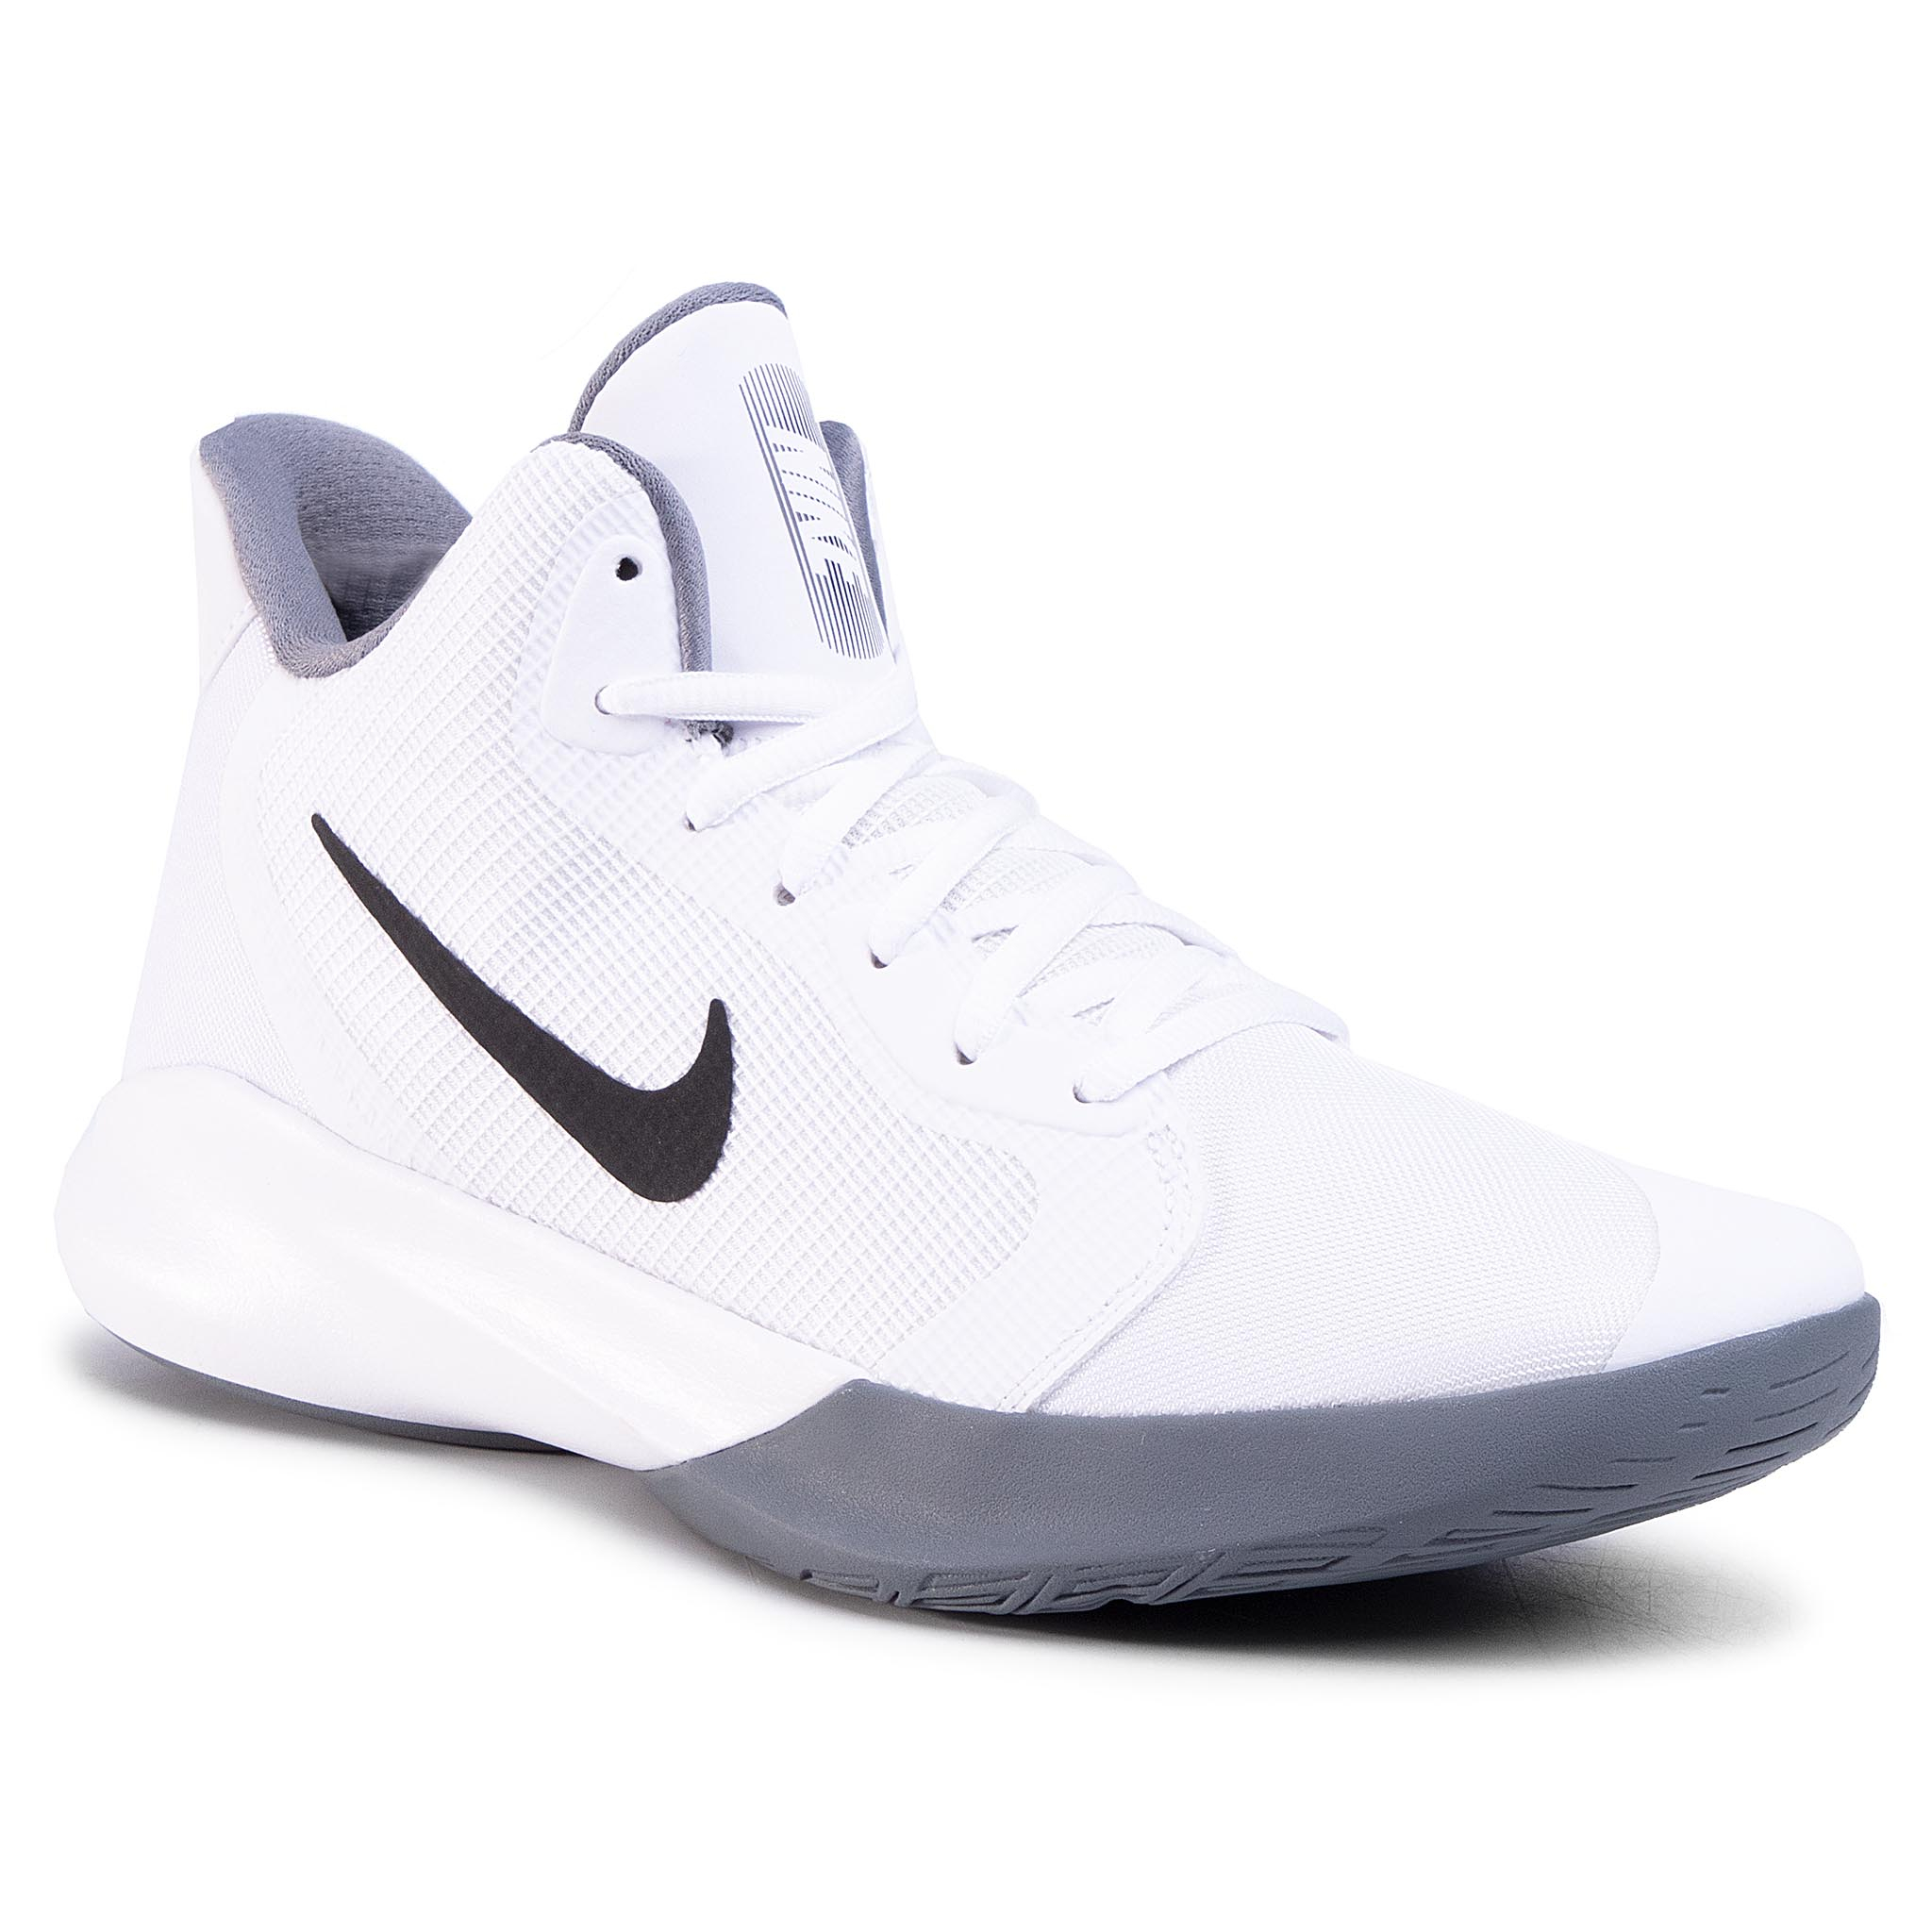 Pantofi Nike - Precision Iii Aq7495 100 White/Black imagine epantofi.ro 2021